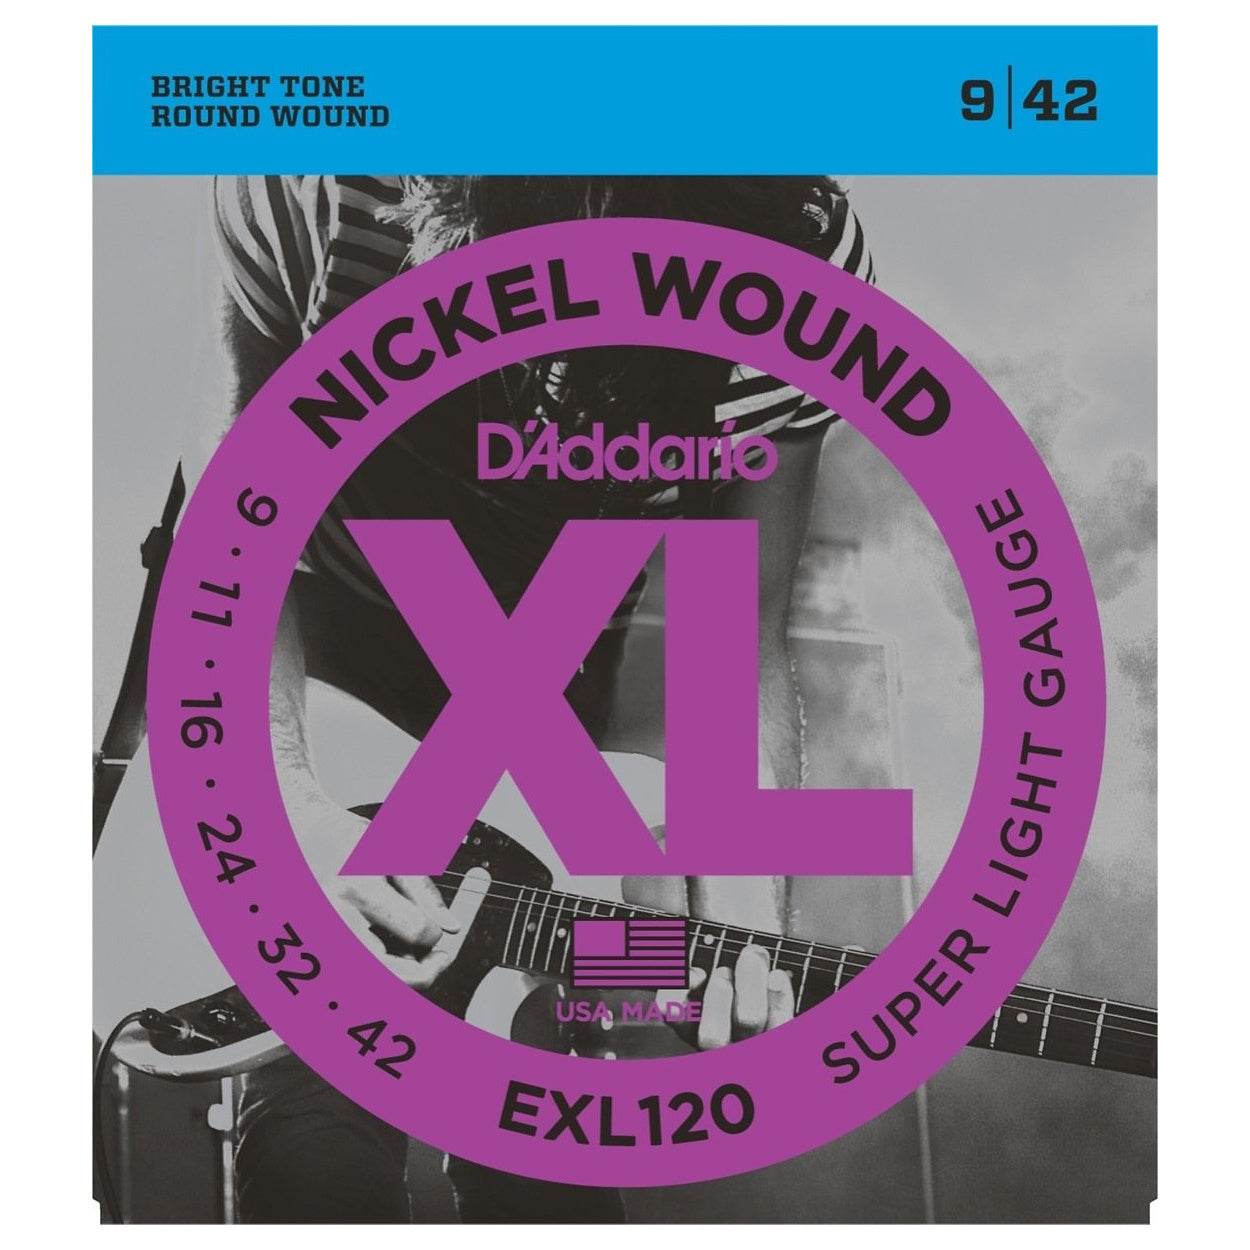 D'Addario EXL120 XL Electric Guitar Strings (Super Light, 9-42), 10-Pack